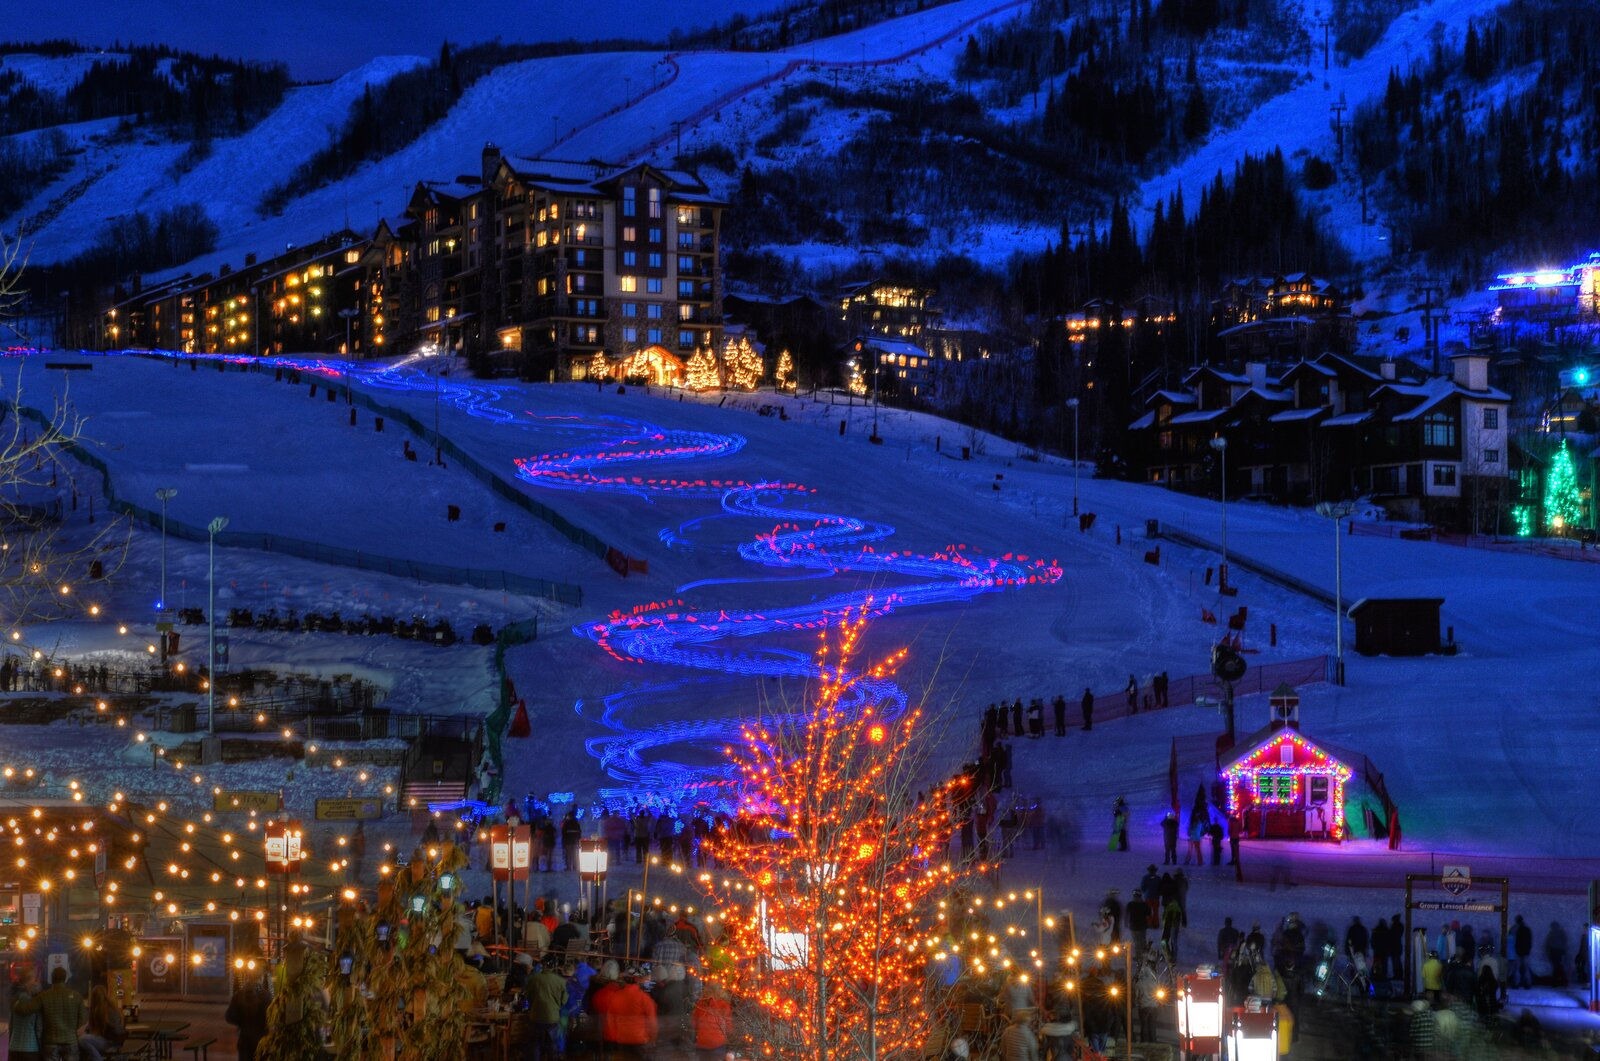 Festive lights mark the Torchlight Parade at Steamboat Resort in Colorado during the holiday season.